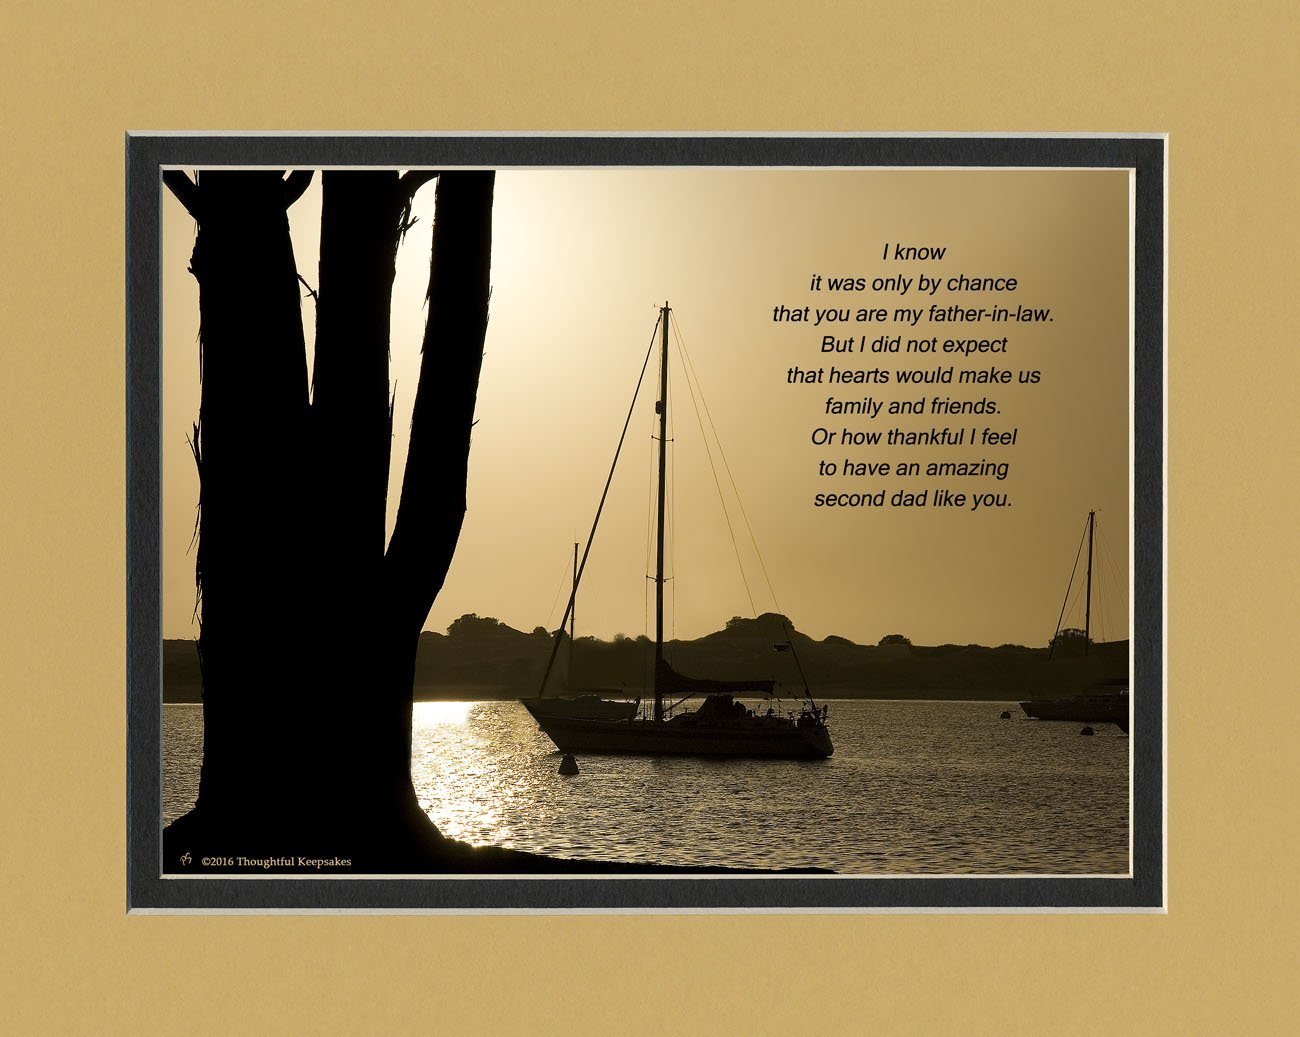 Father in Law Gift with '' How thankful I feel to have an amazing second dad like you.'' poem. Boats Photo, 8x10 Double Matted. Special Fathers Day Gift, Birthday, Christmas, Wedding for Father-in-law